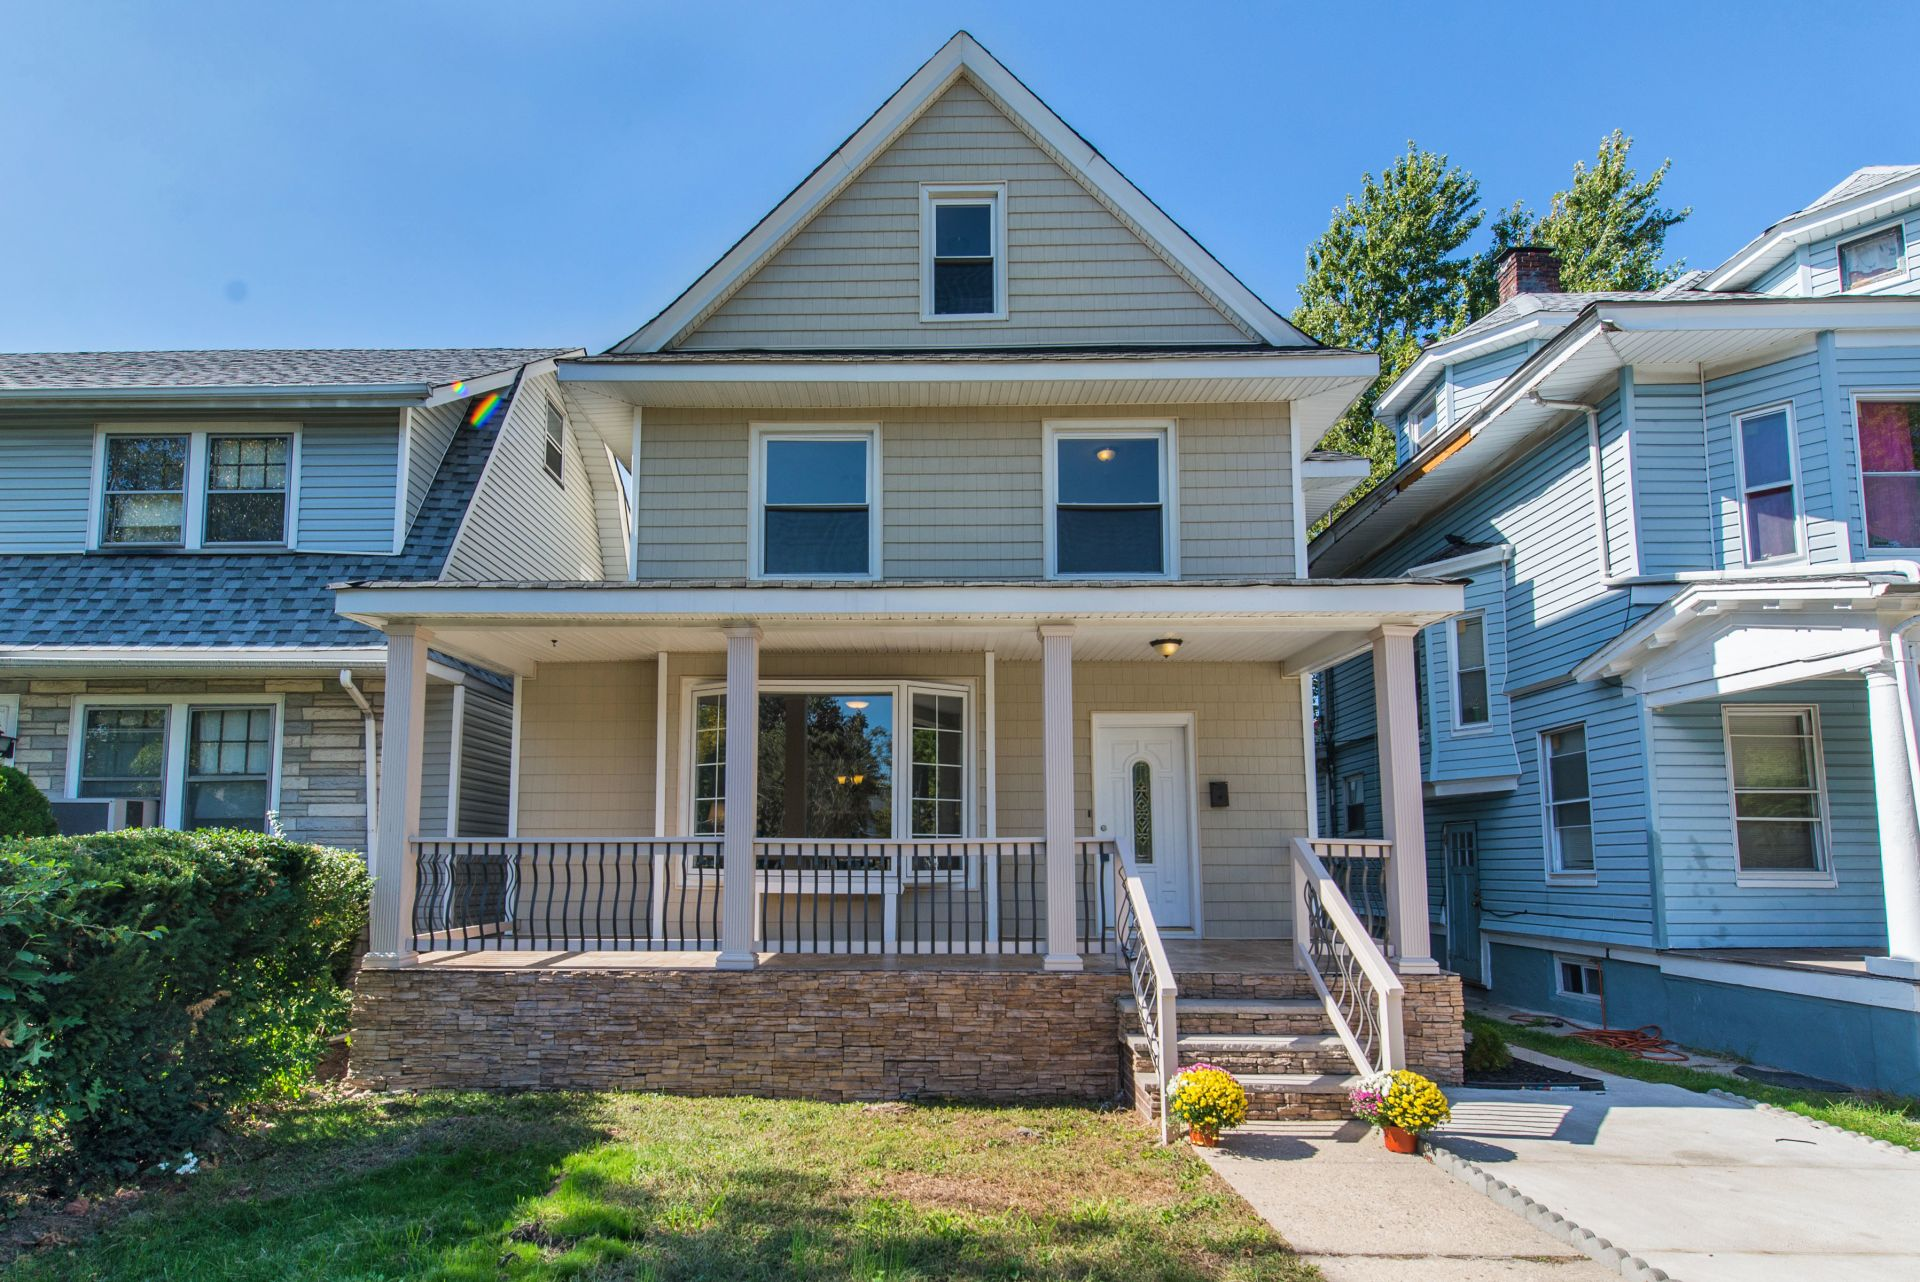 5 Bedroom Updated Side Hall Colonial for Sale in Bloomfield, NJ